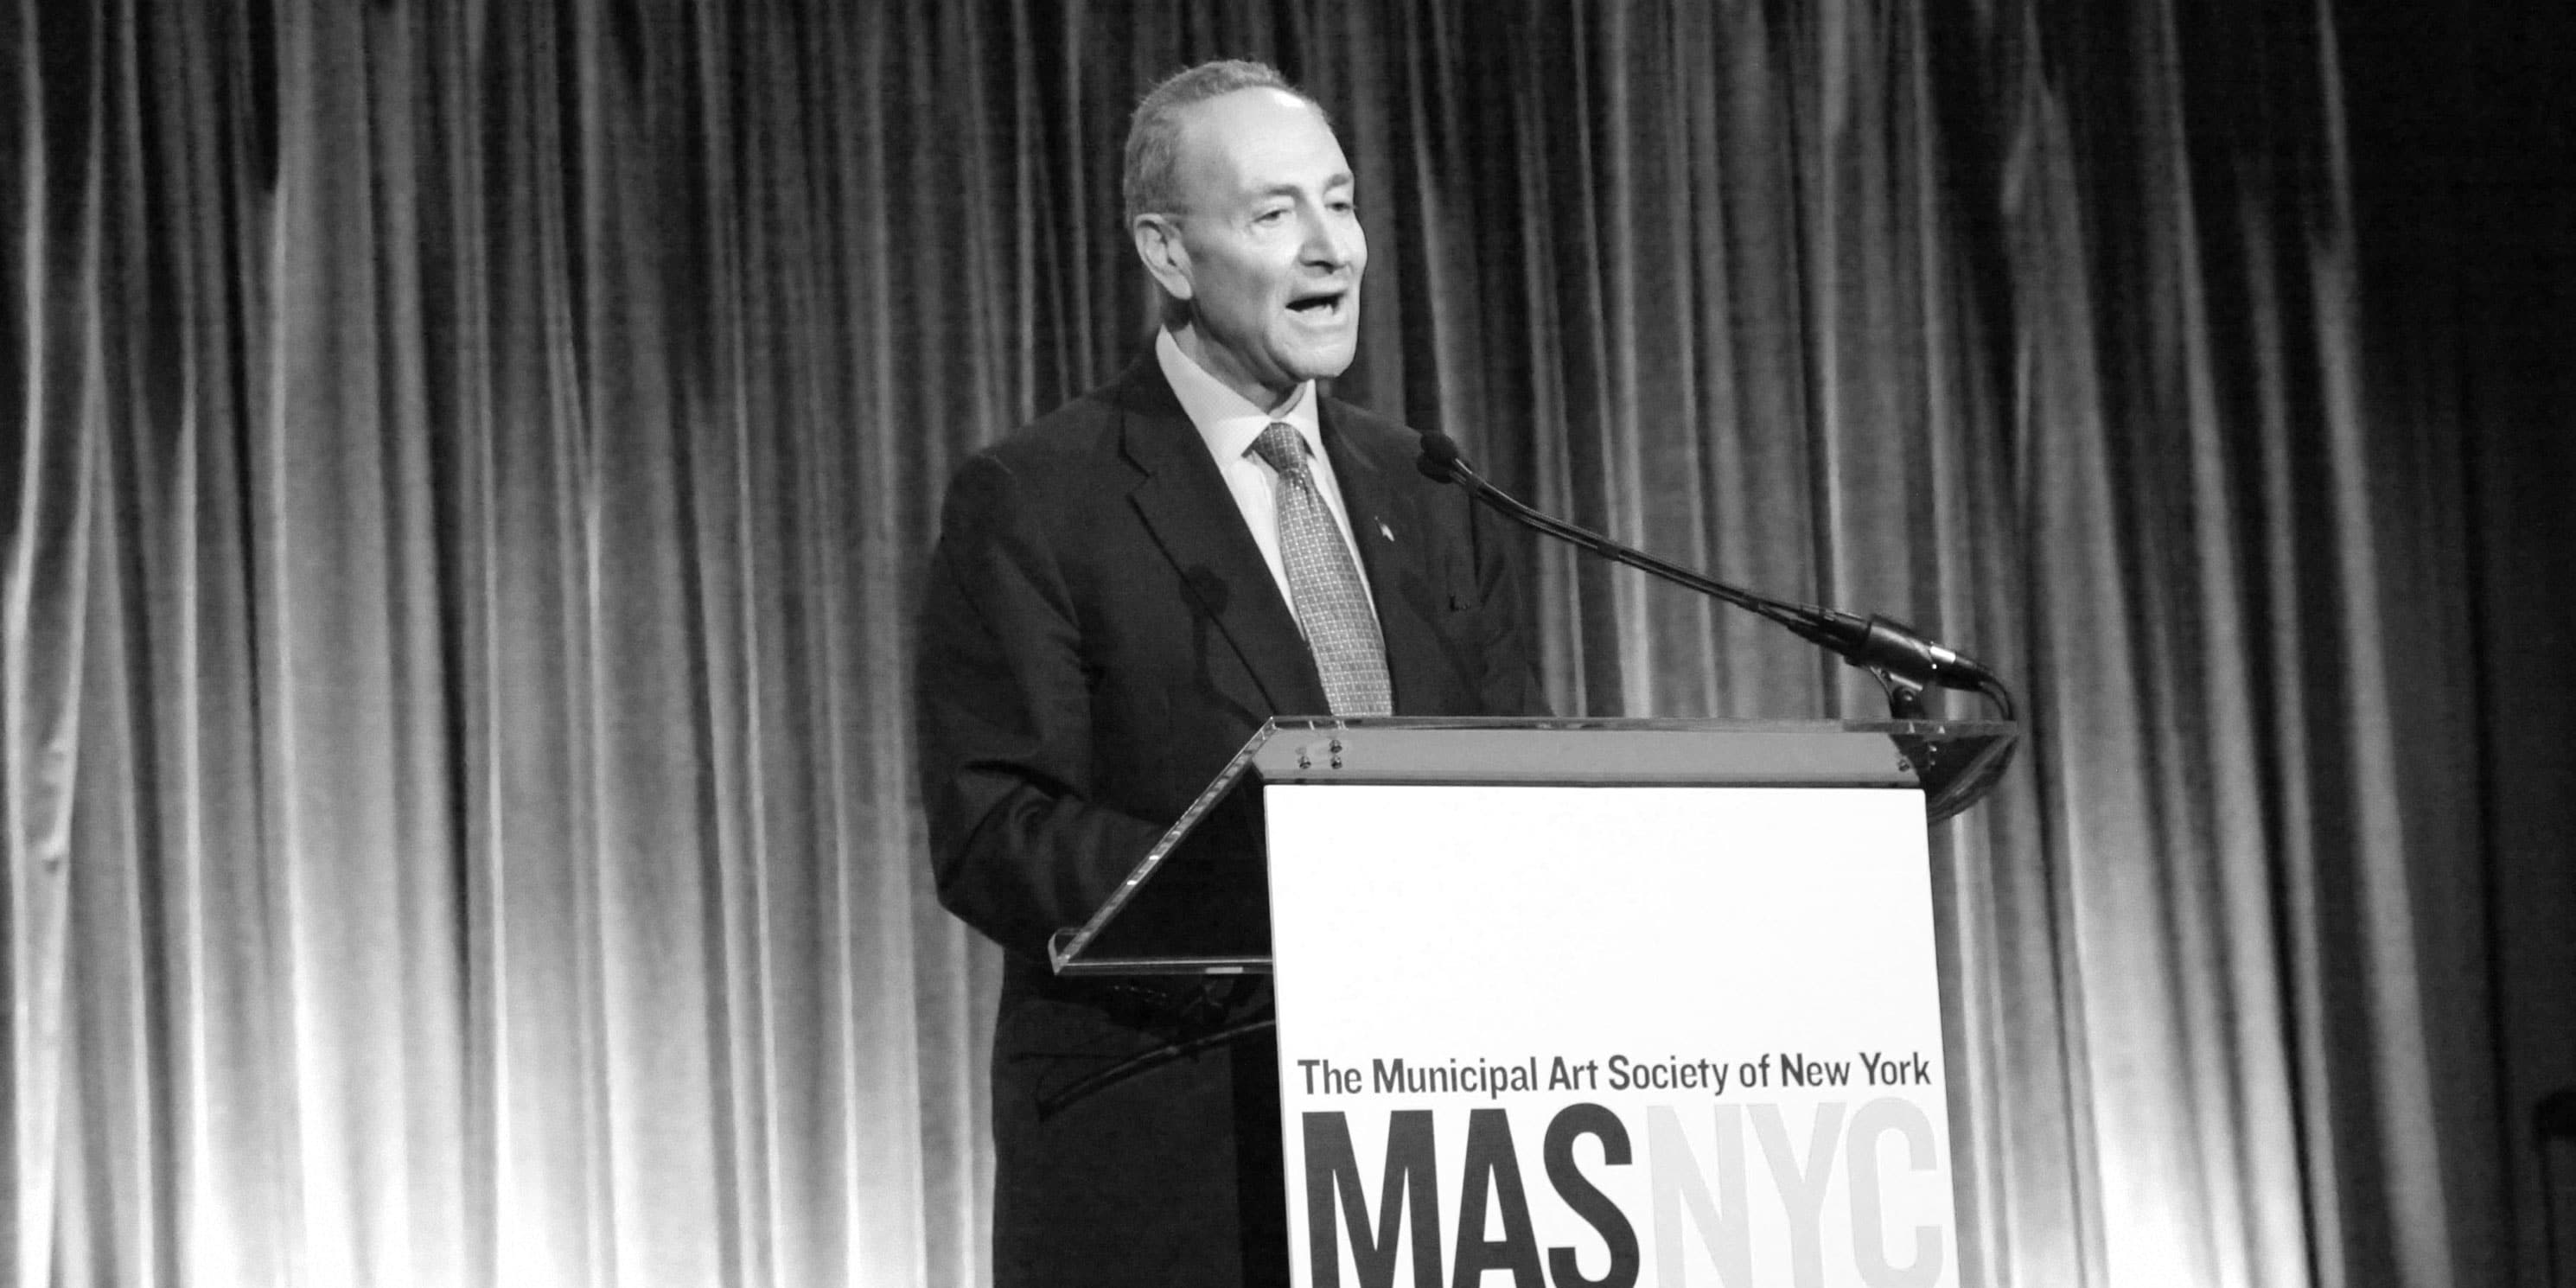 Senator Chuck Schumer speaks at the Gala